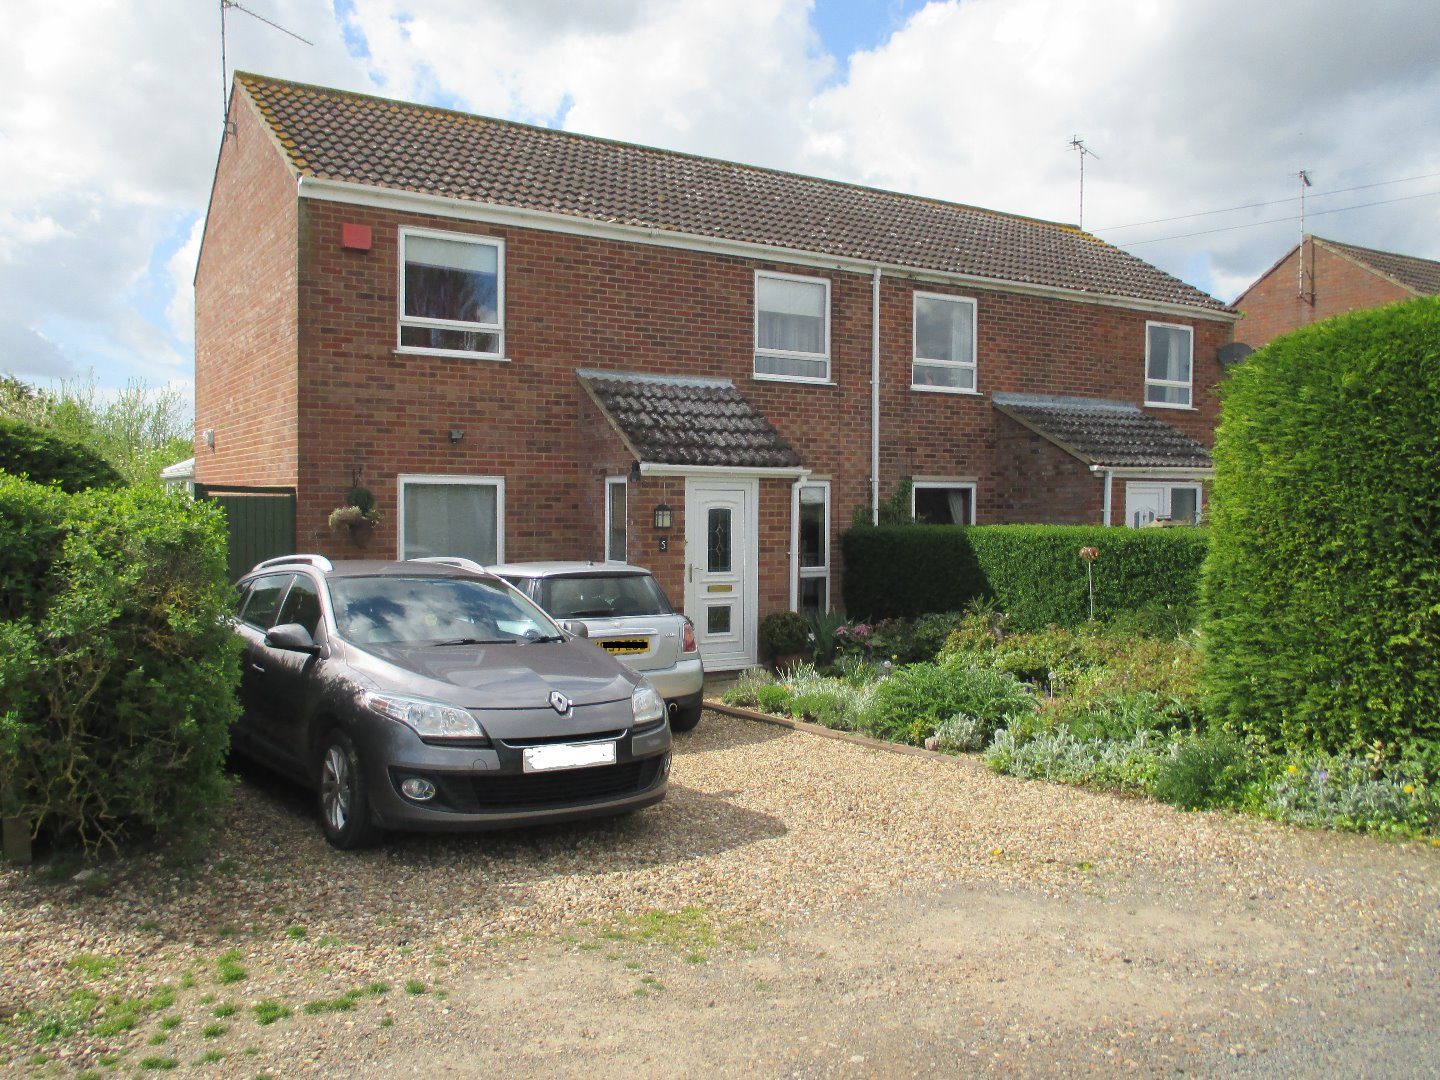 3 bed House for sale on Rhoon Road, Terrington St. Clements - Property Image 1